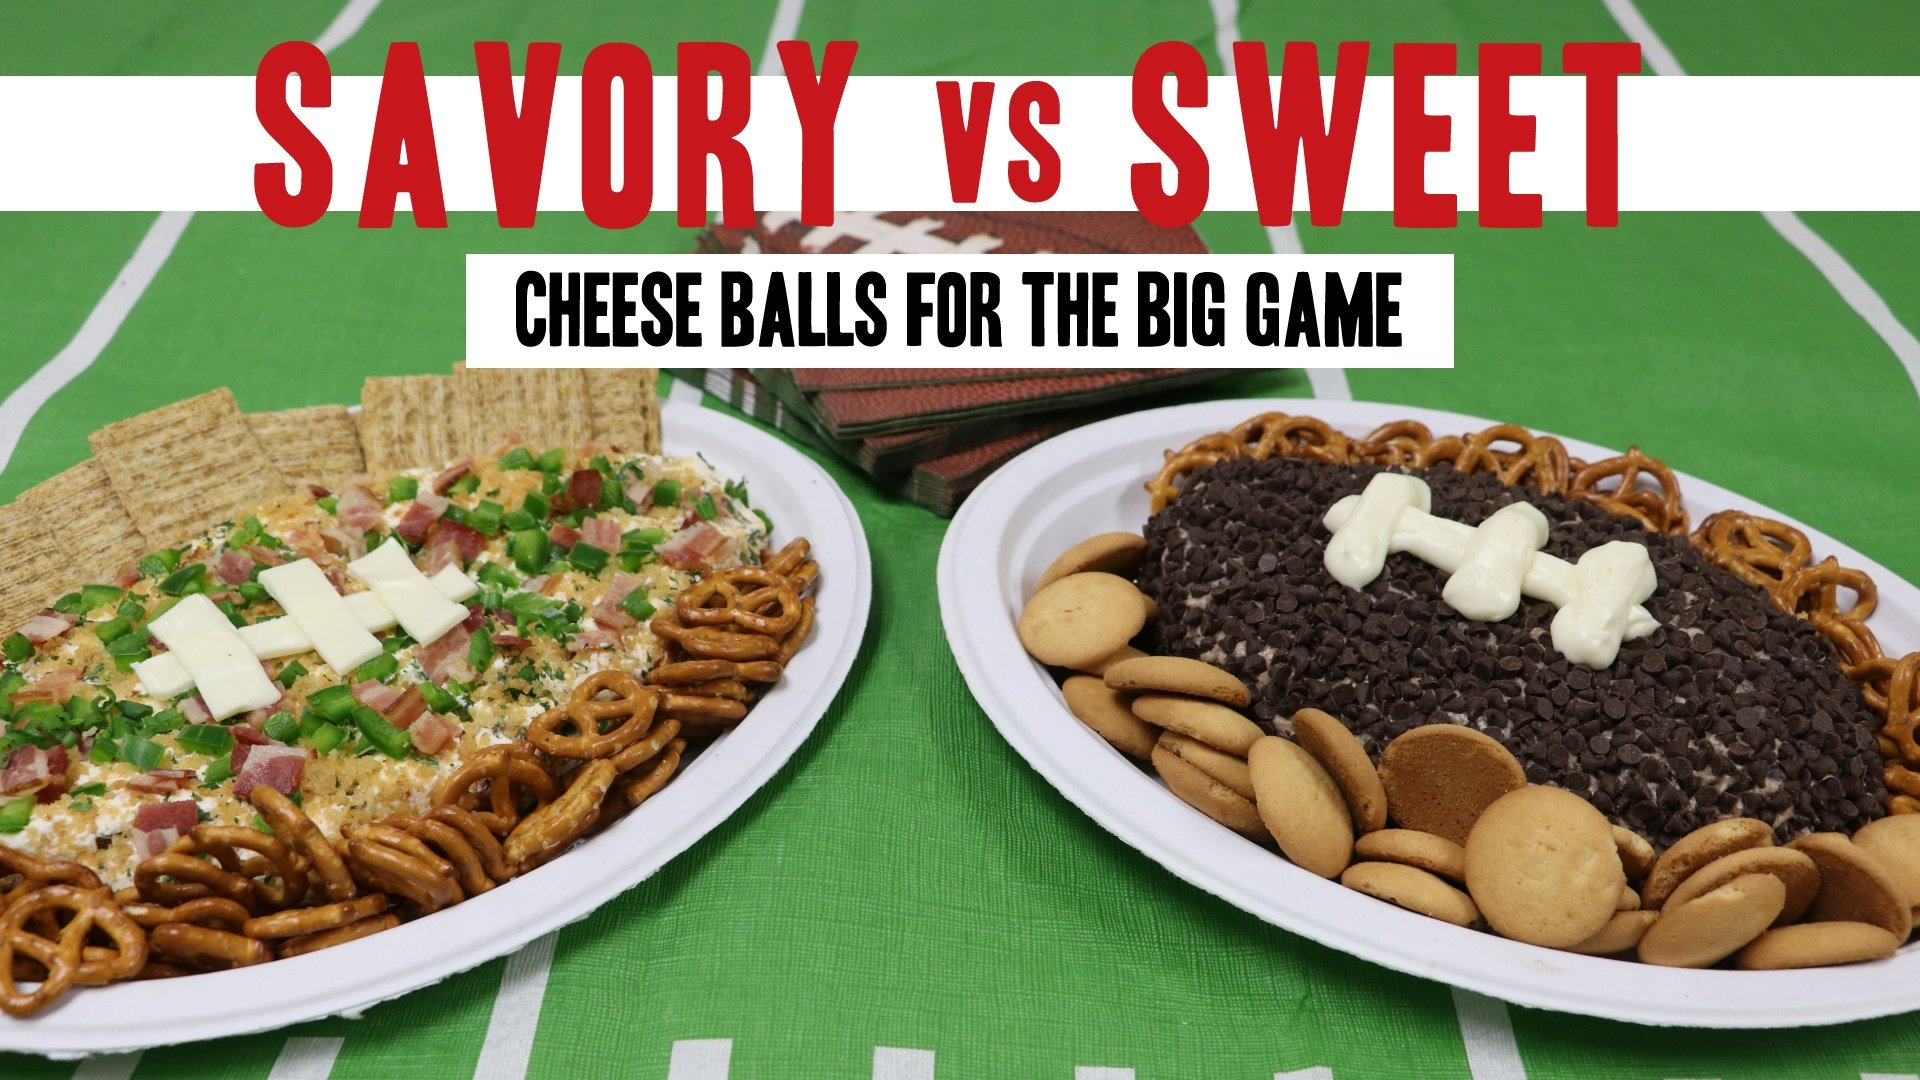 Super Bowl Party Cheese Ball Recipes: Savory vs. Sweet Showdown